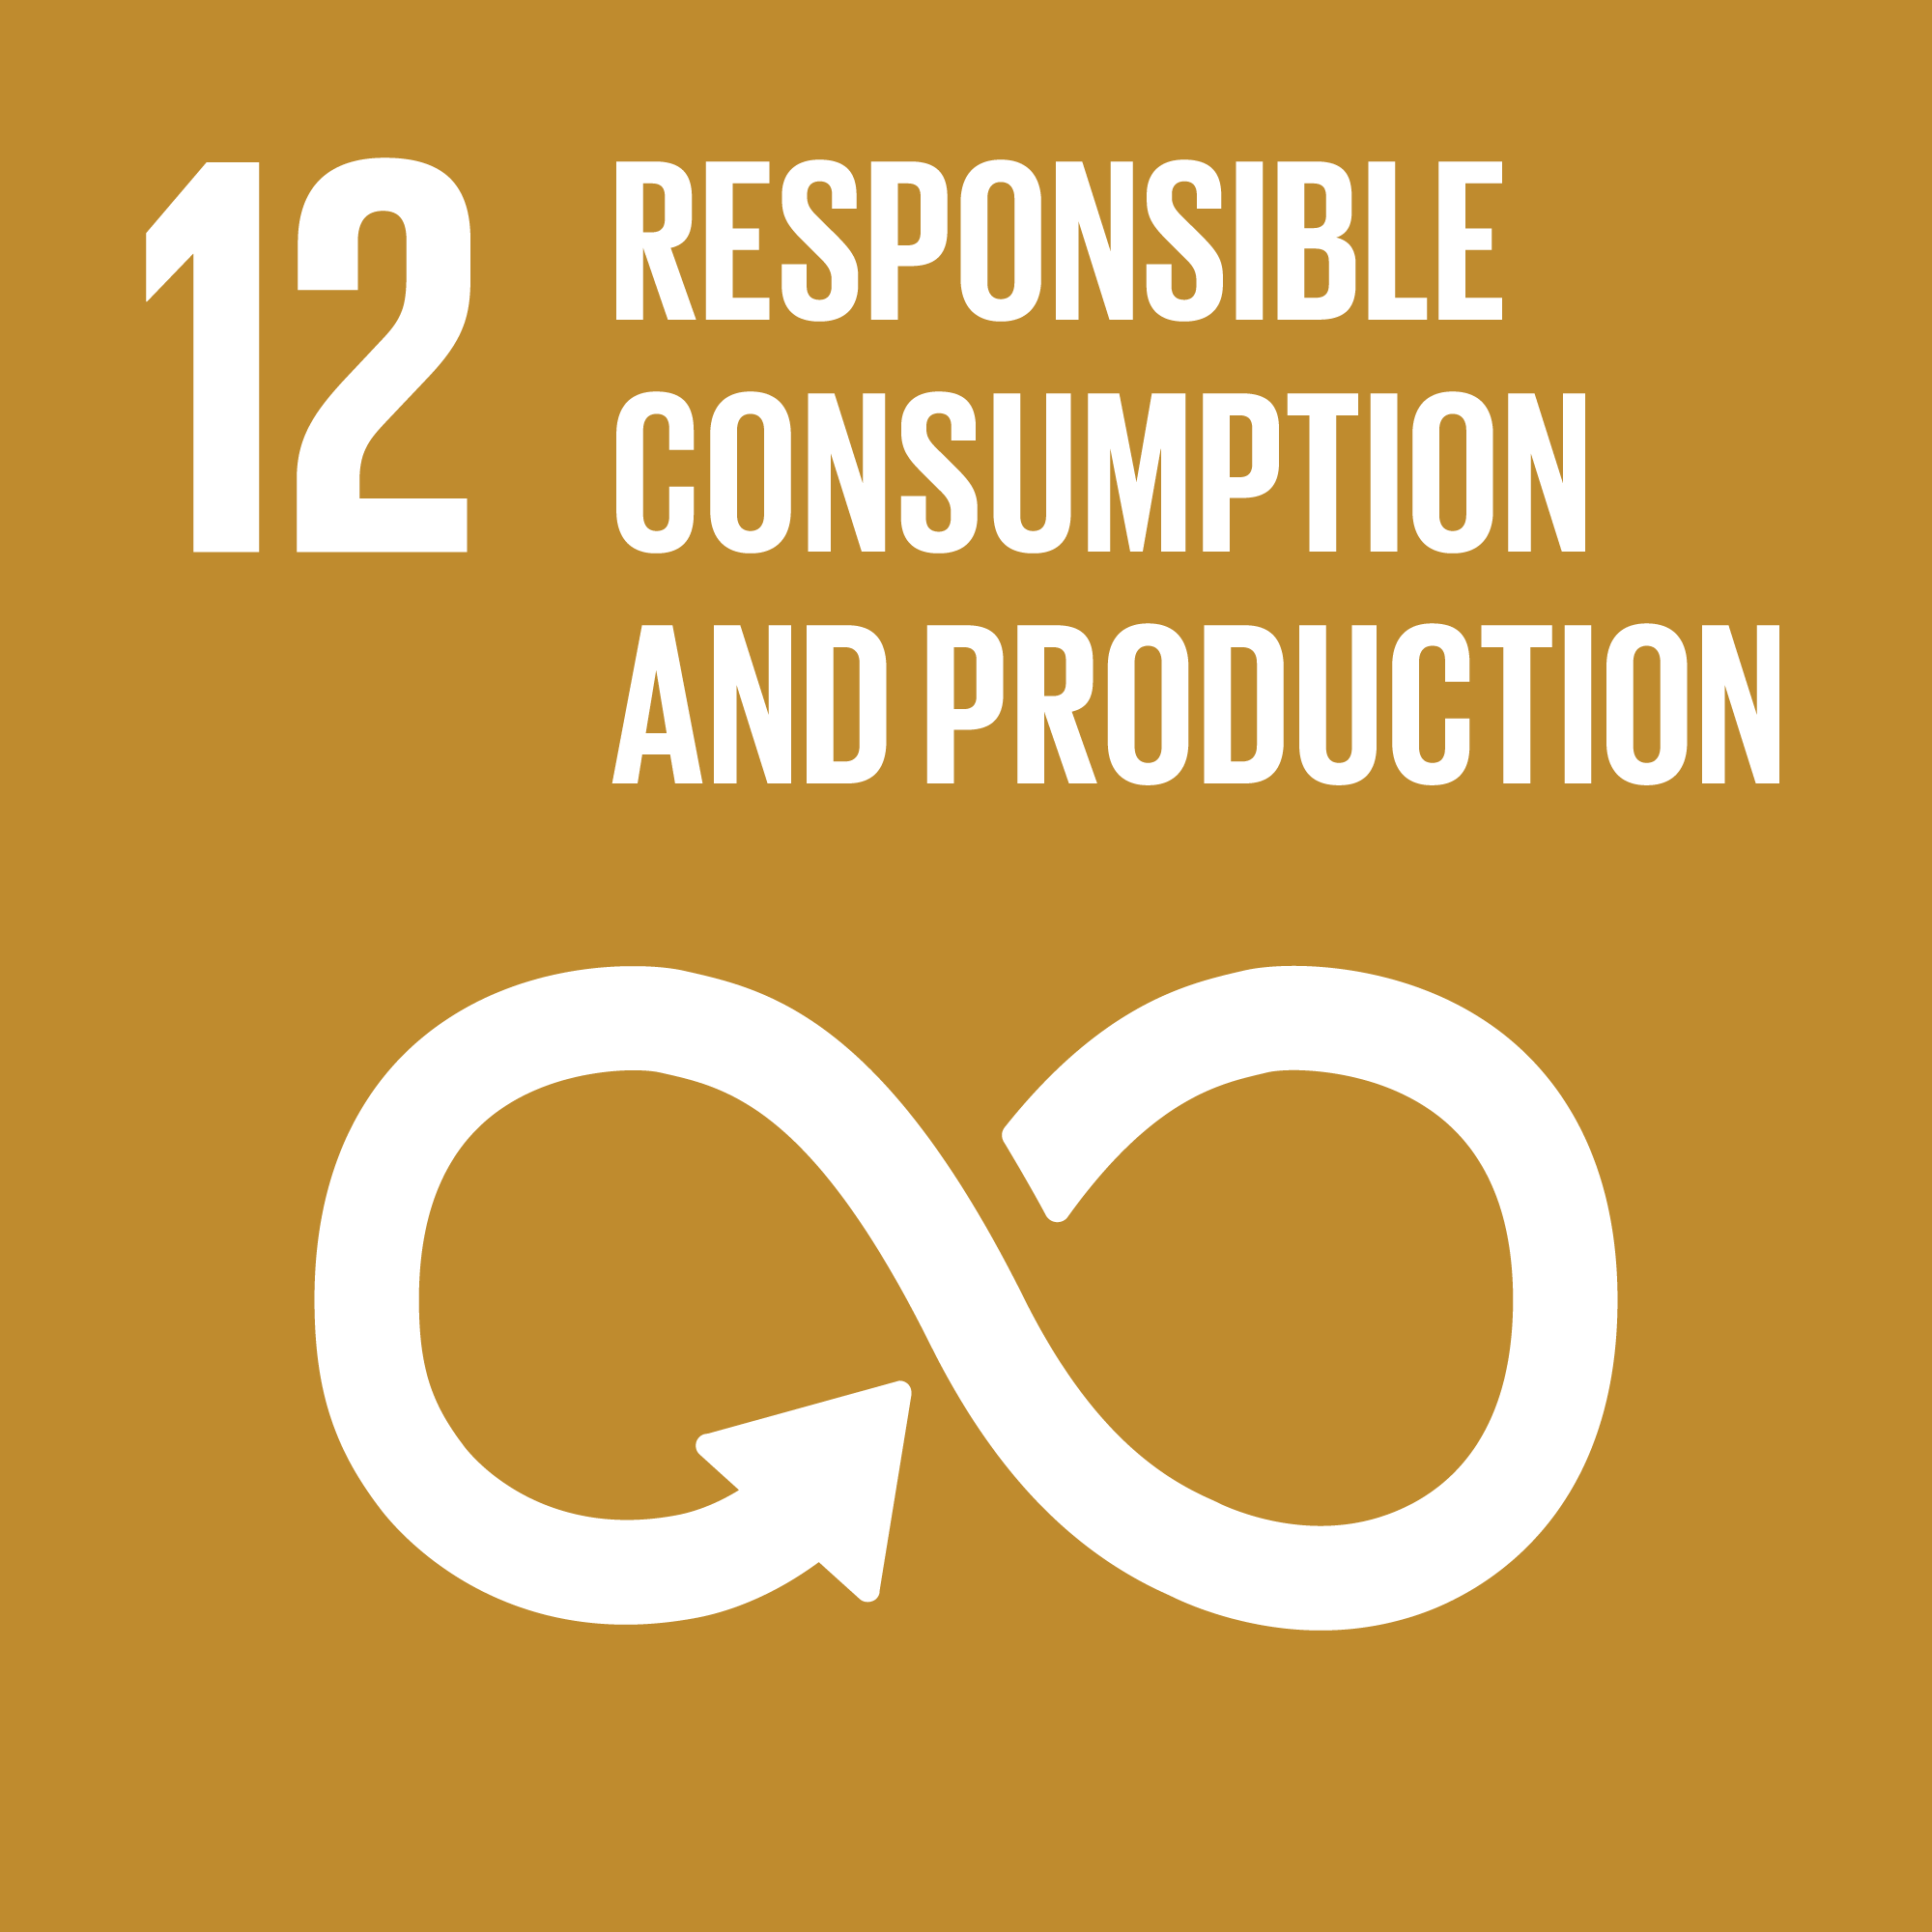 Icon for the global goals number 12, Responsible consumption and production